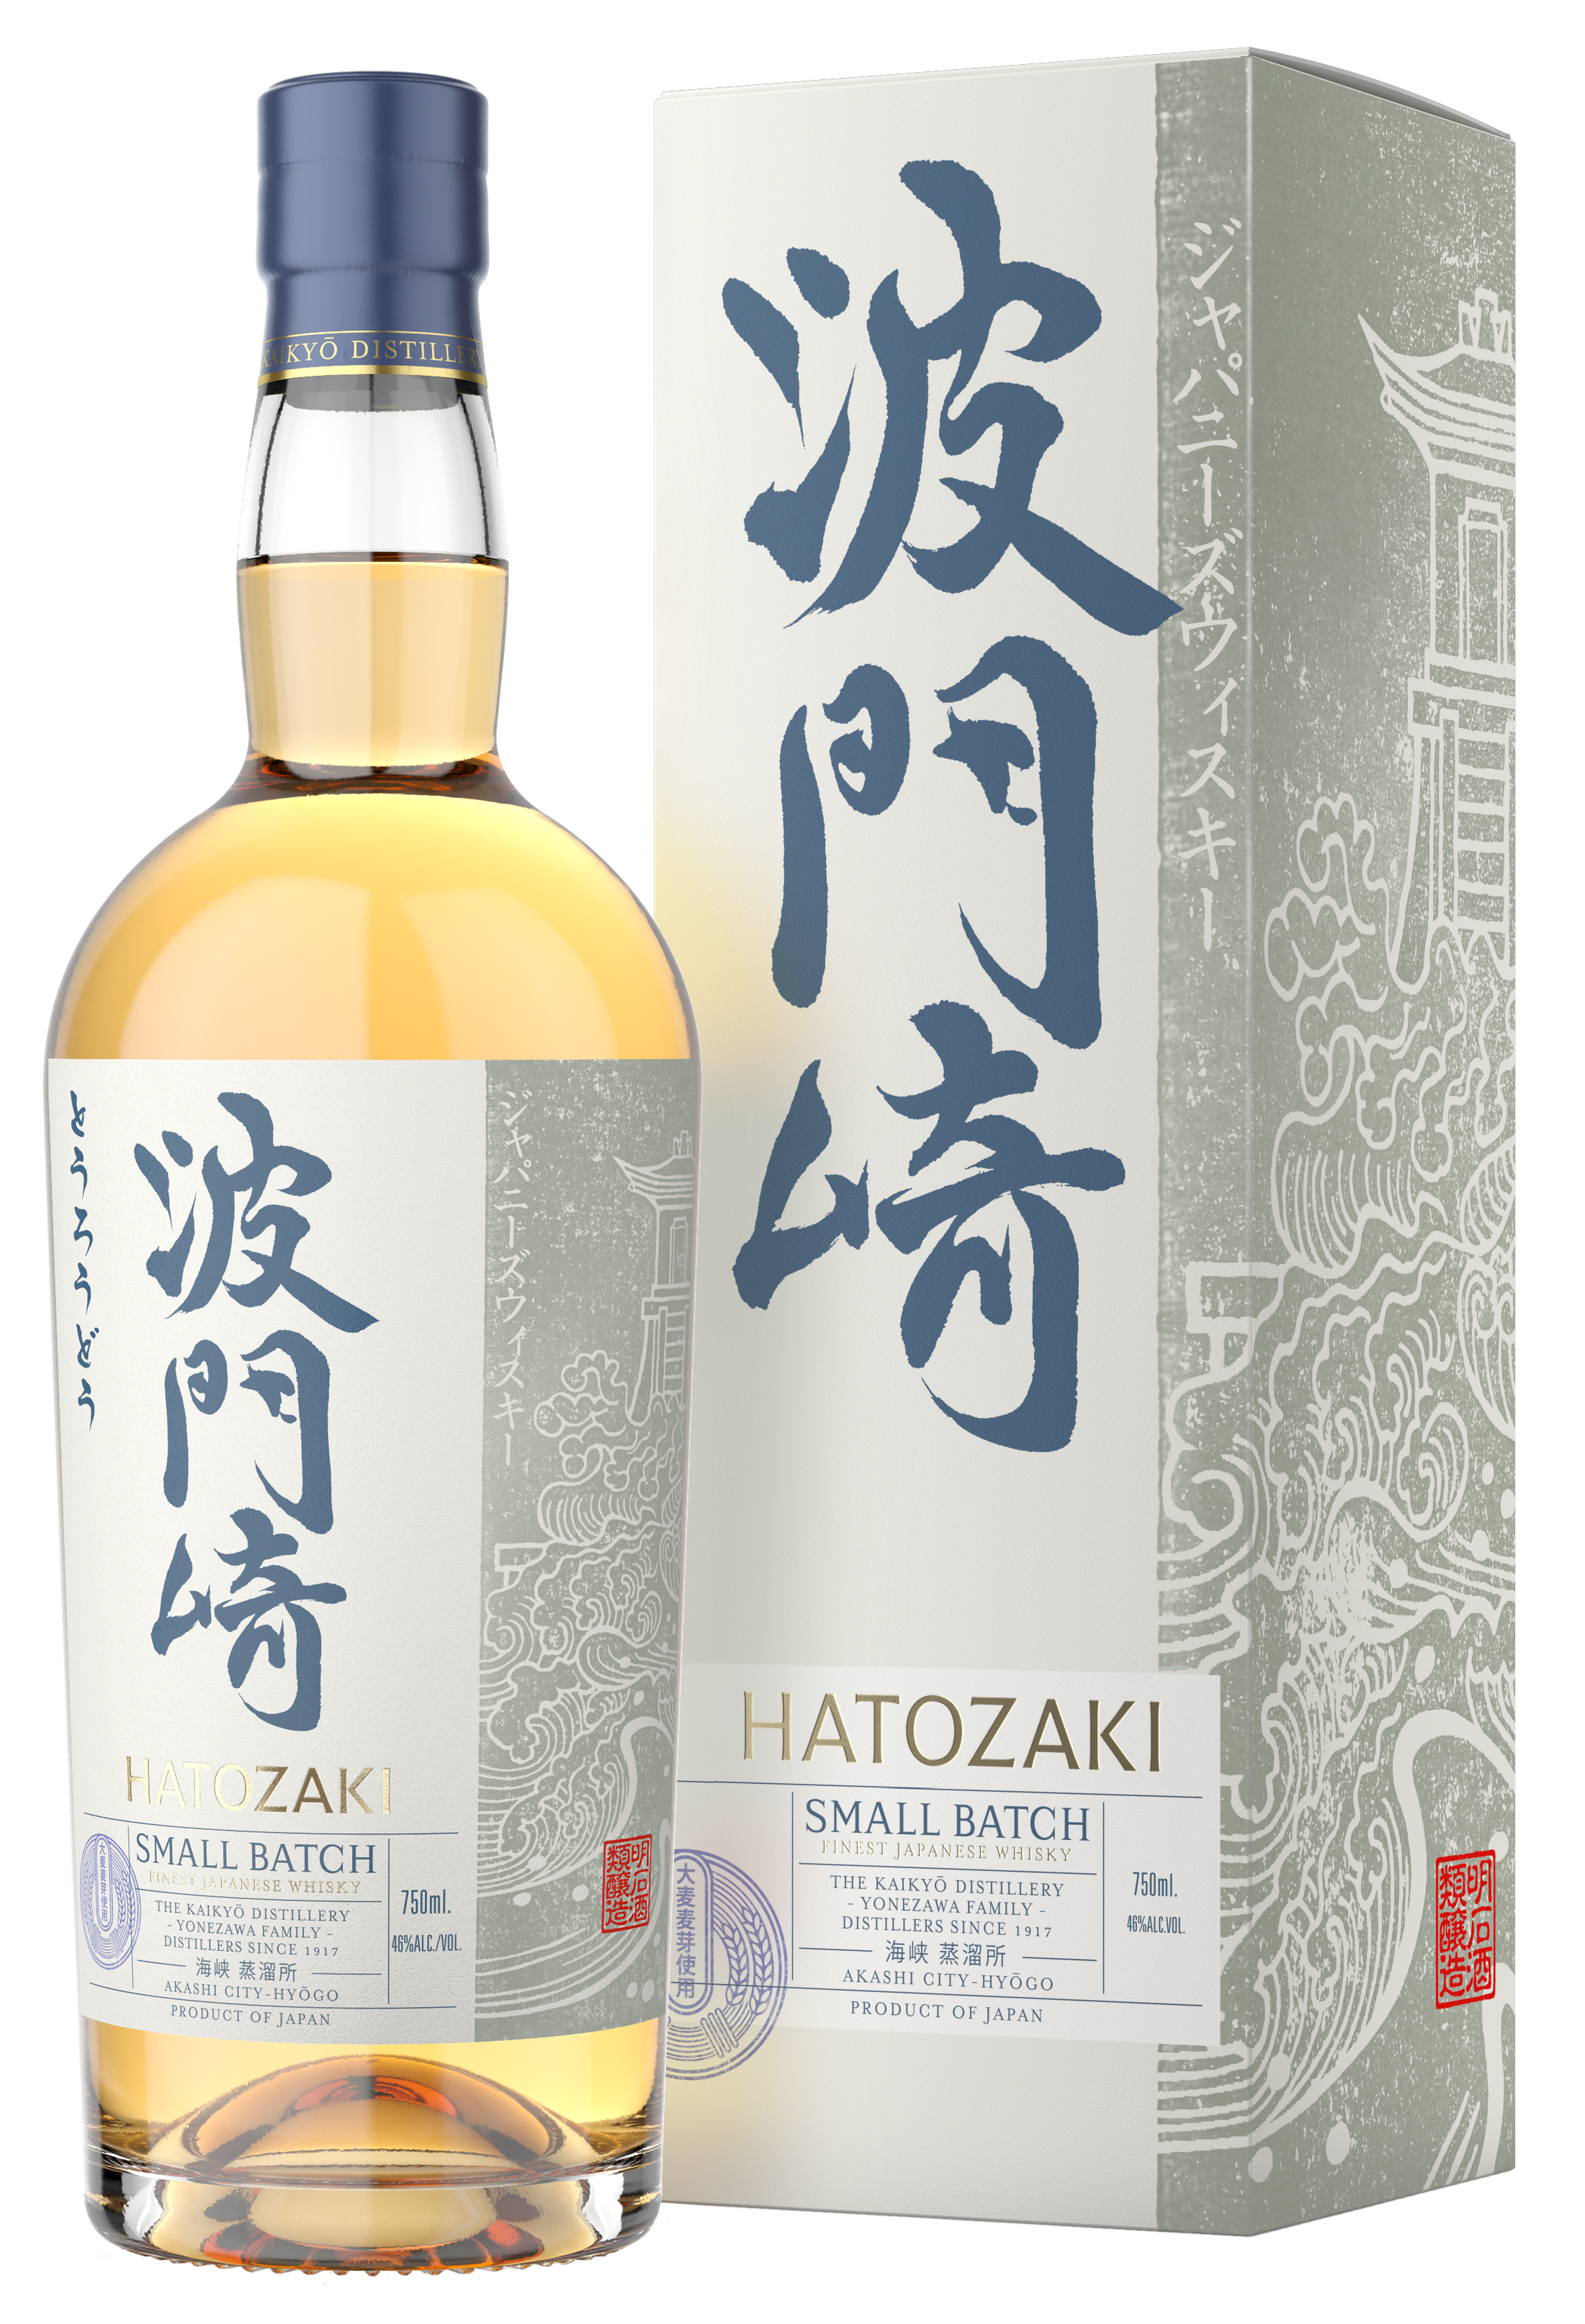 Hatozaki Pure US Bottle and Box-2